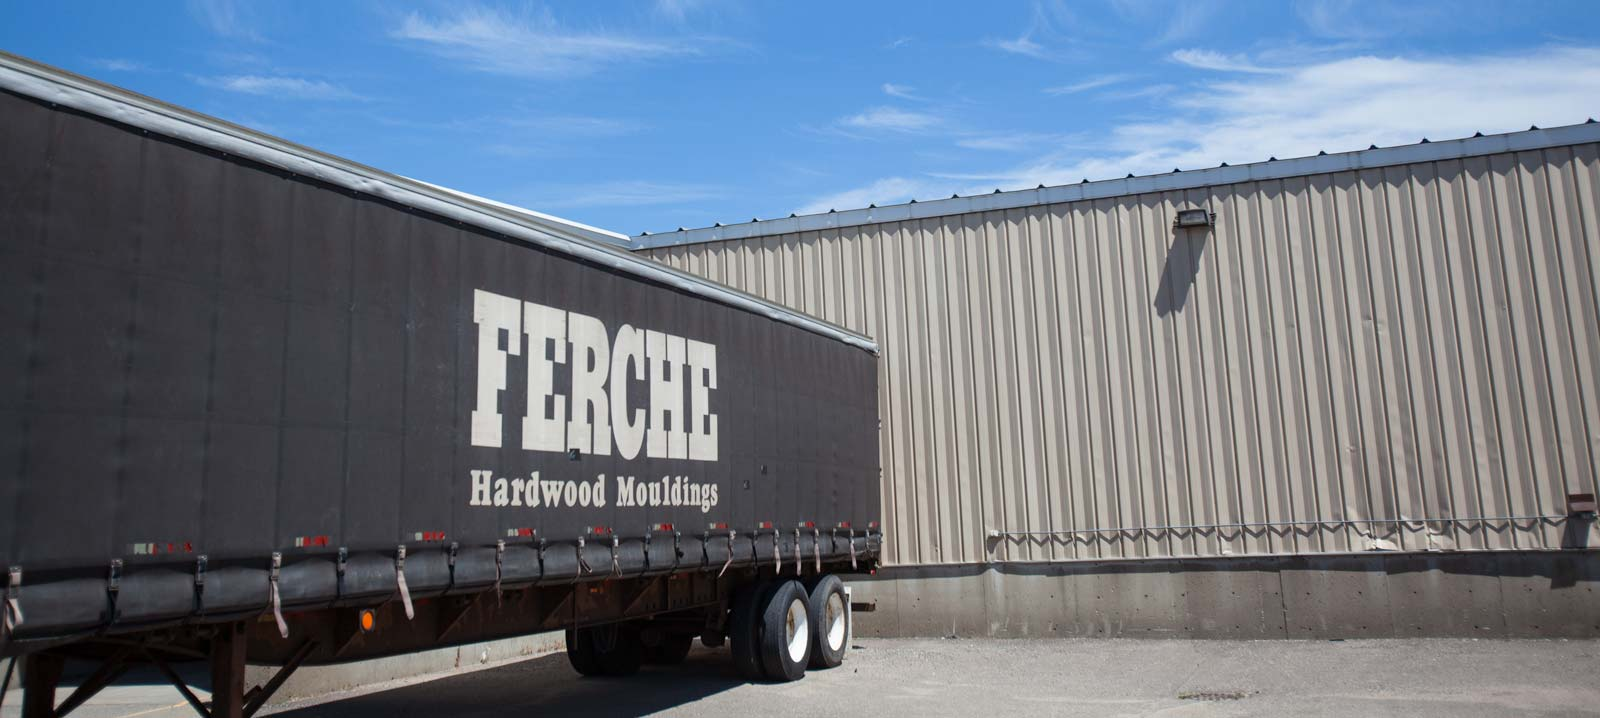 Semi-truck trailers backed into the plant, ready to ship wood mouldings across the country